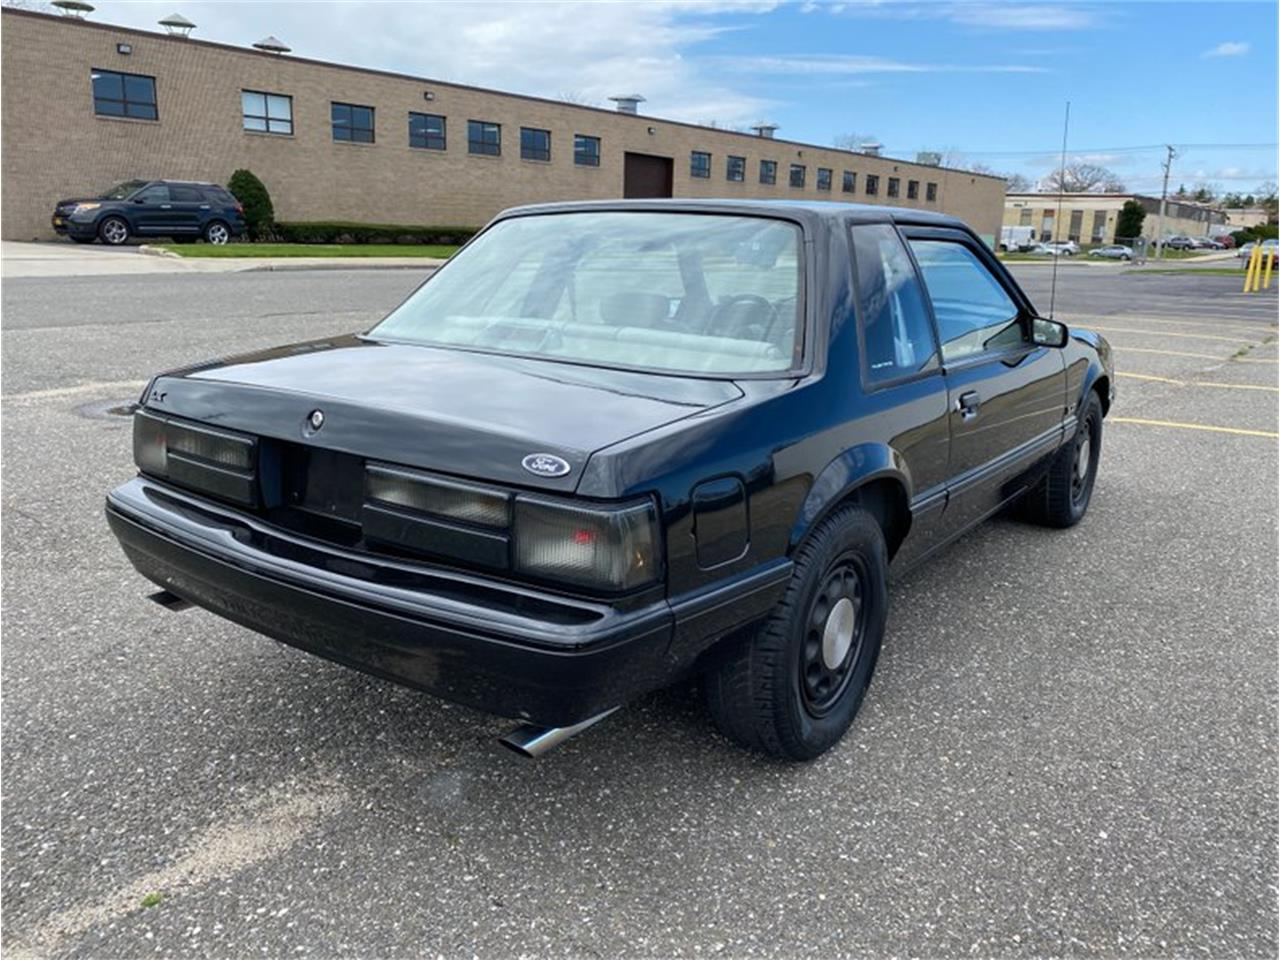 1989 Ford Mustang (CC-1339242) for sale in West Babylon, New York